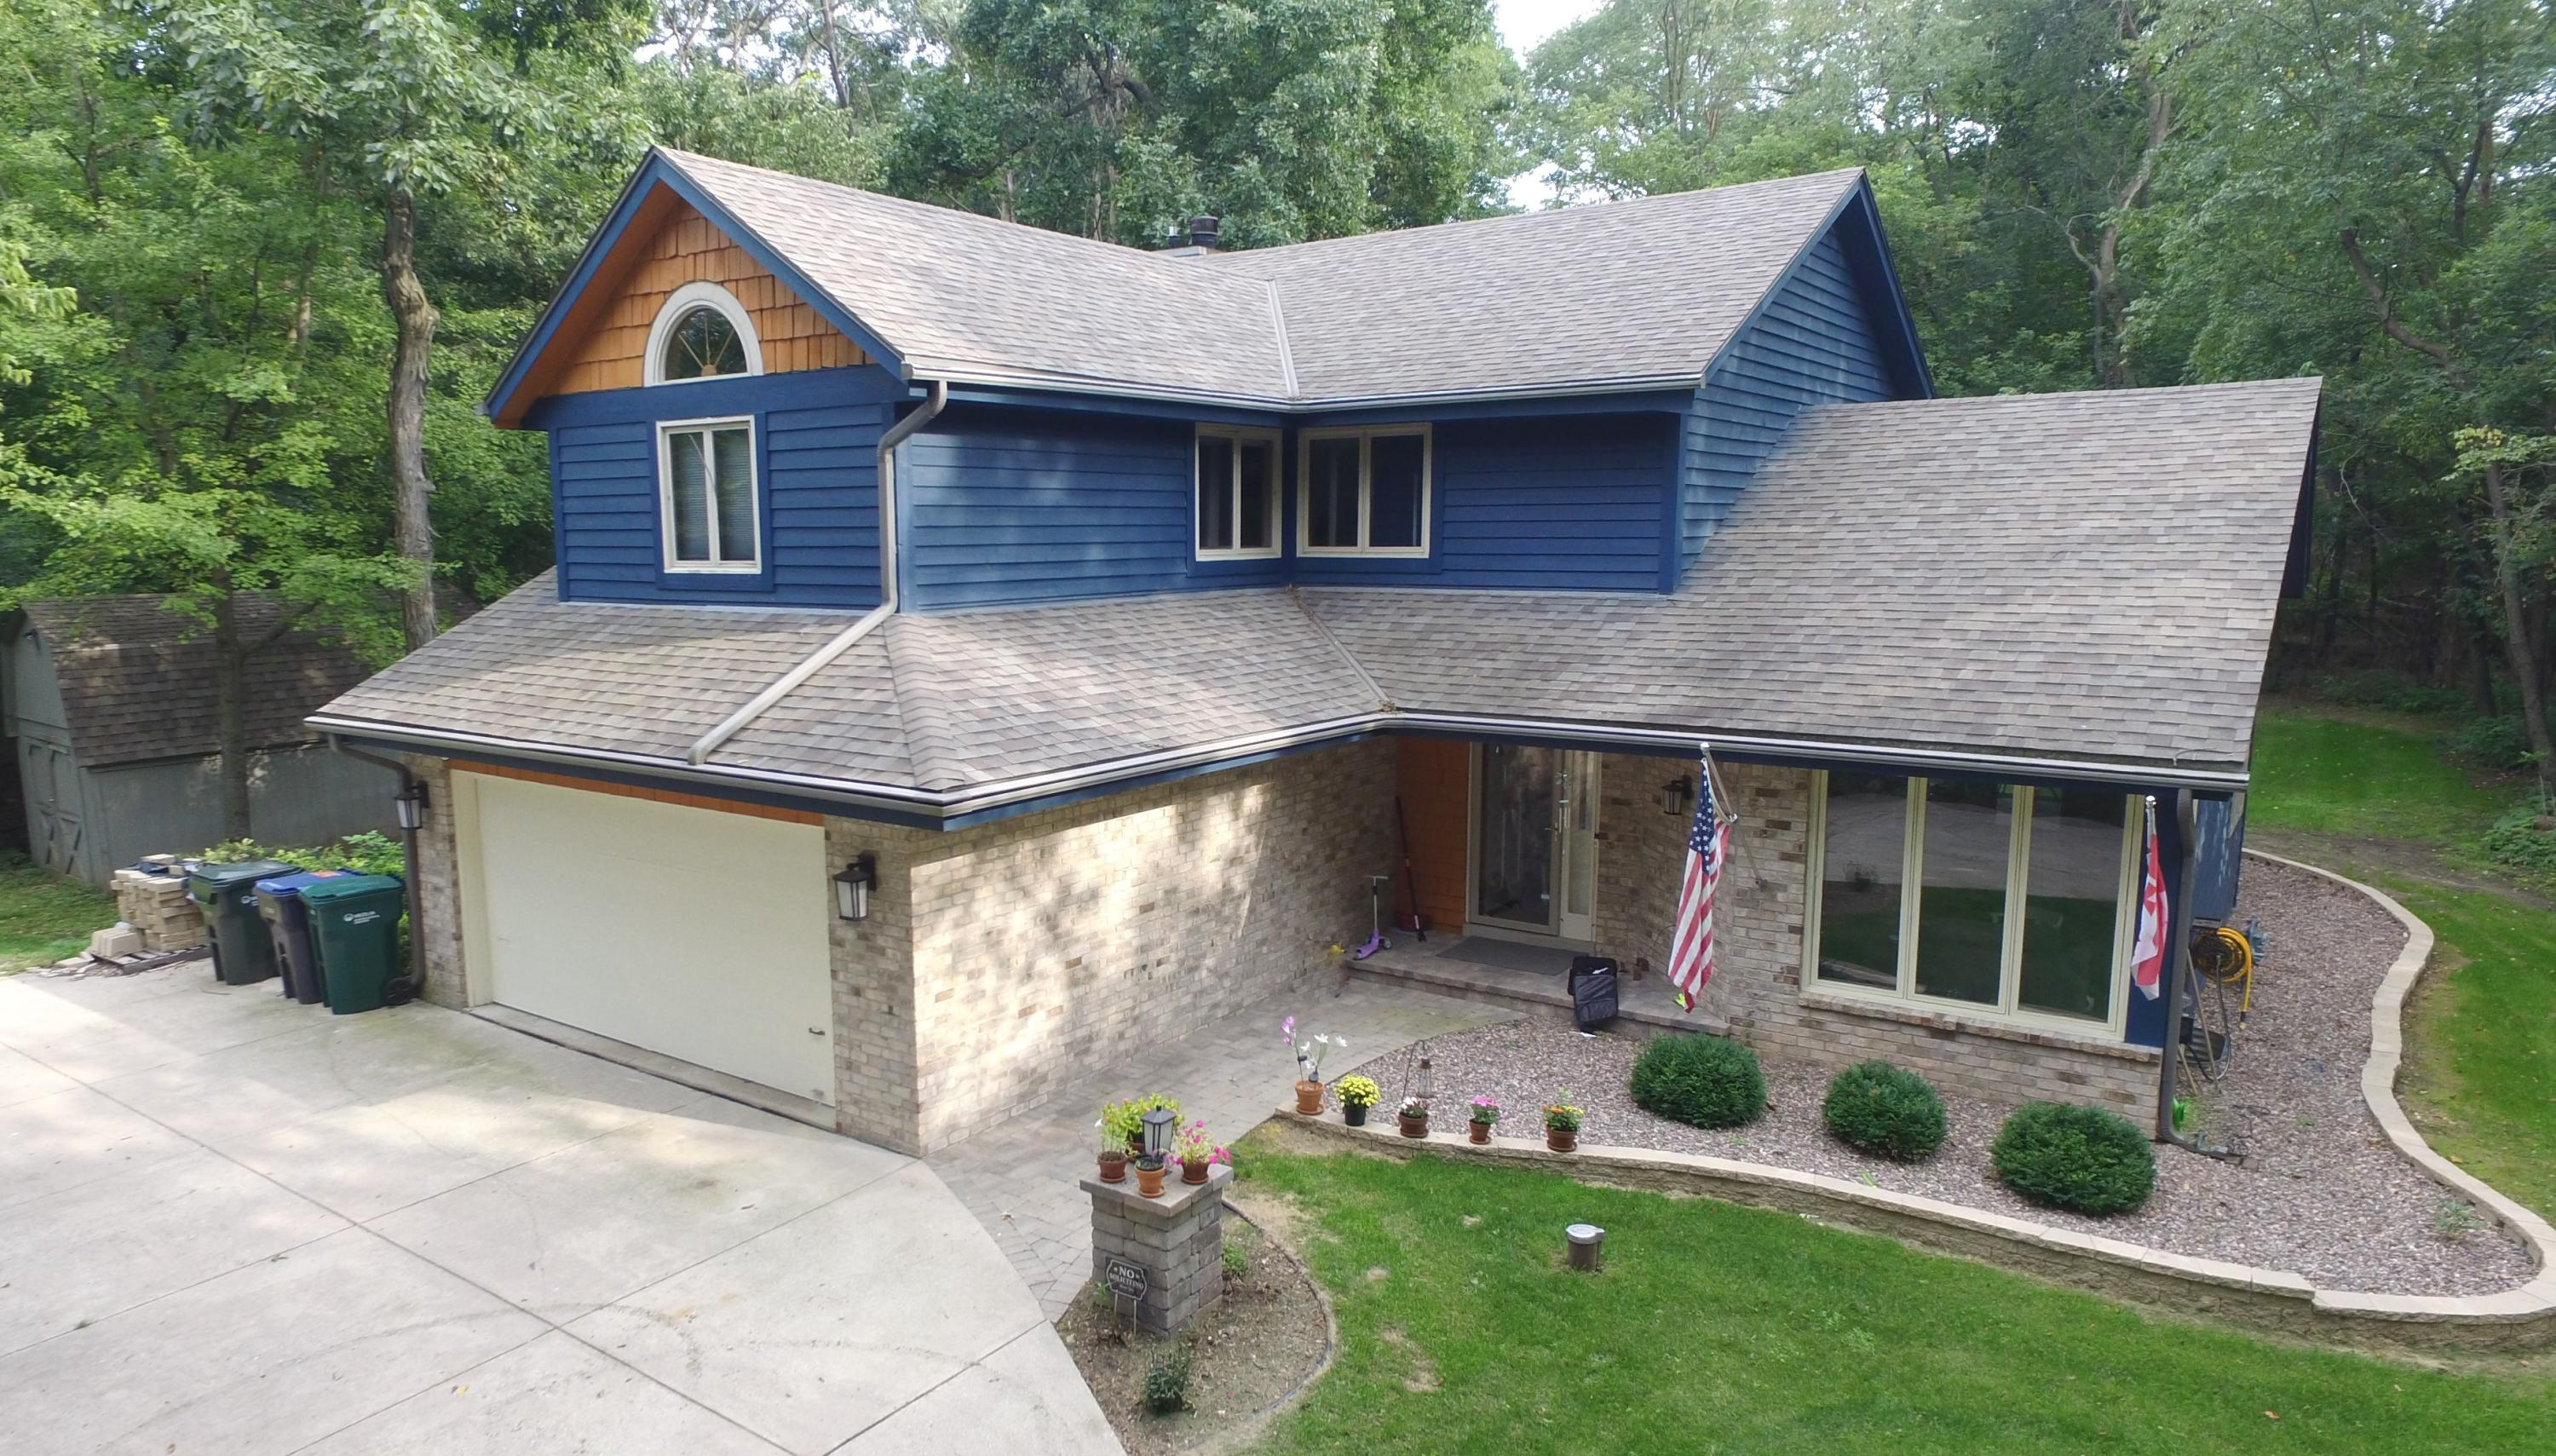 Photo of S42W25050 Oakview Dr, Waukesha, WI 53189